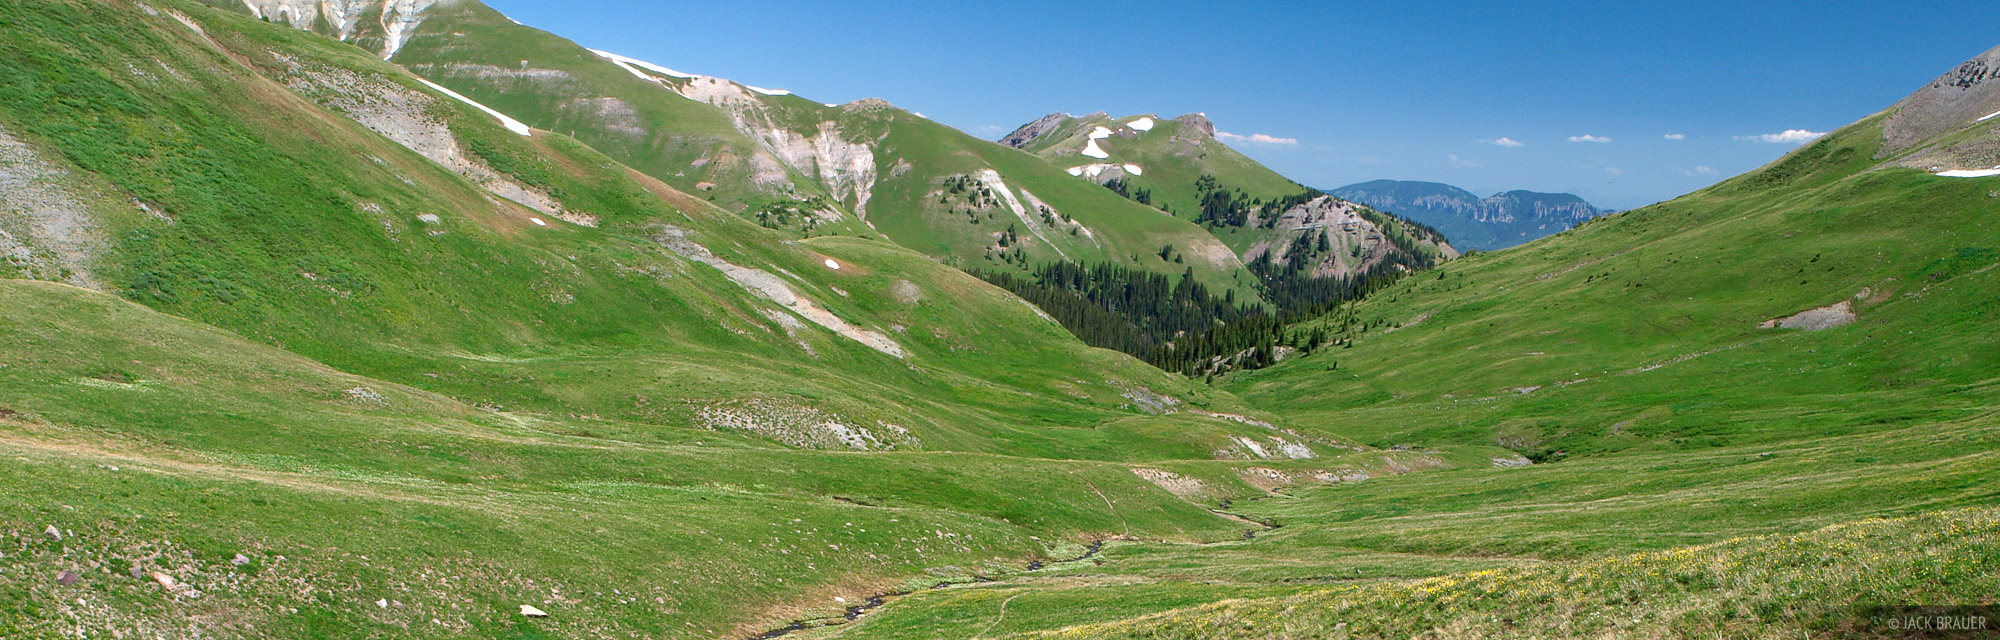 The green tundra paradise of the Uncompahgre Wilderness in July.